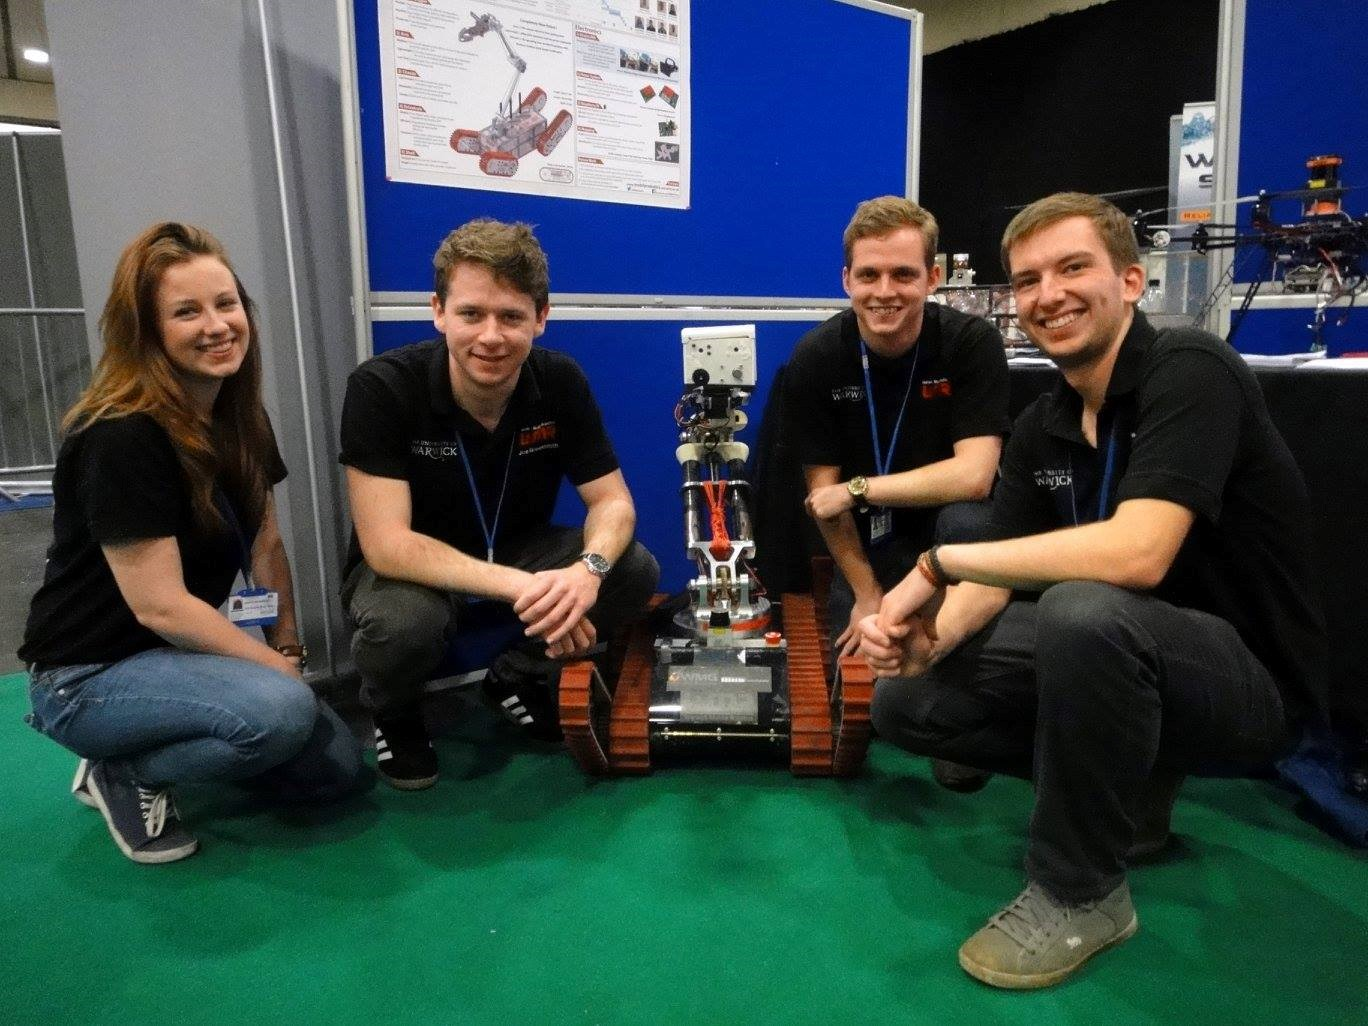 This year the project is being run by eight final year Engineering students as part of their MEng Engineering degree